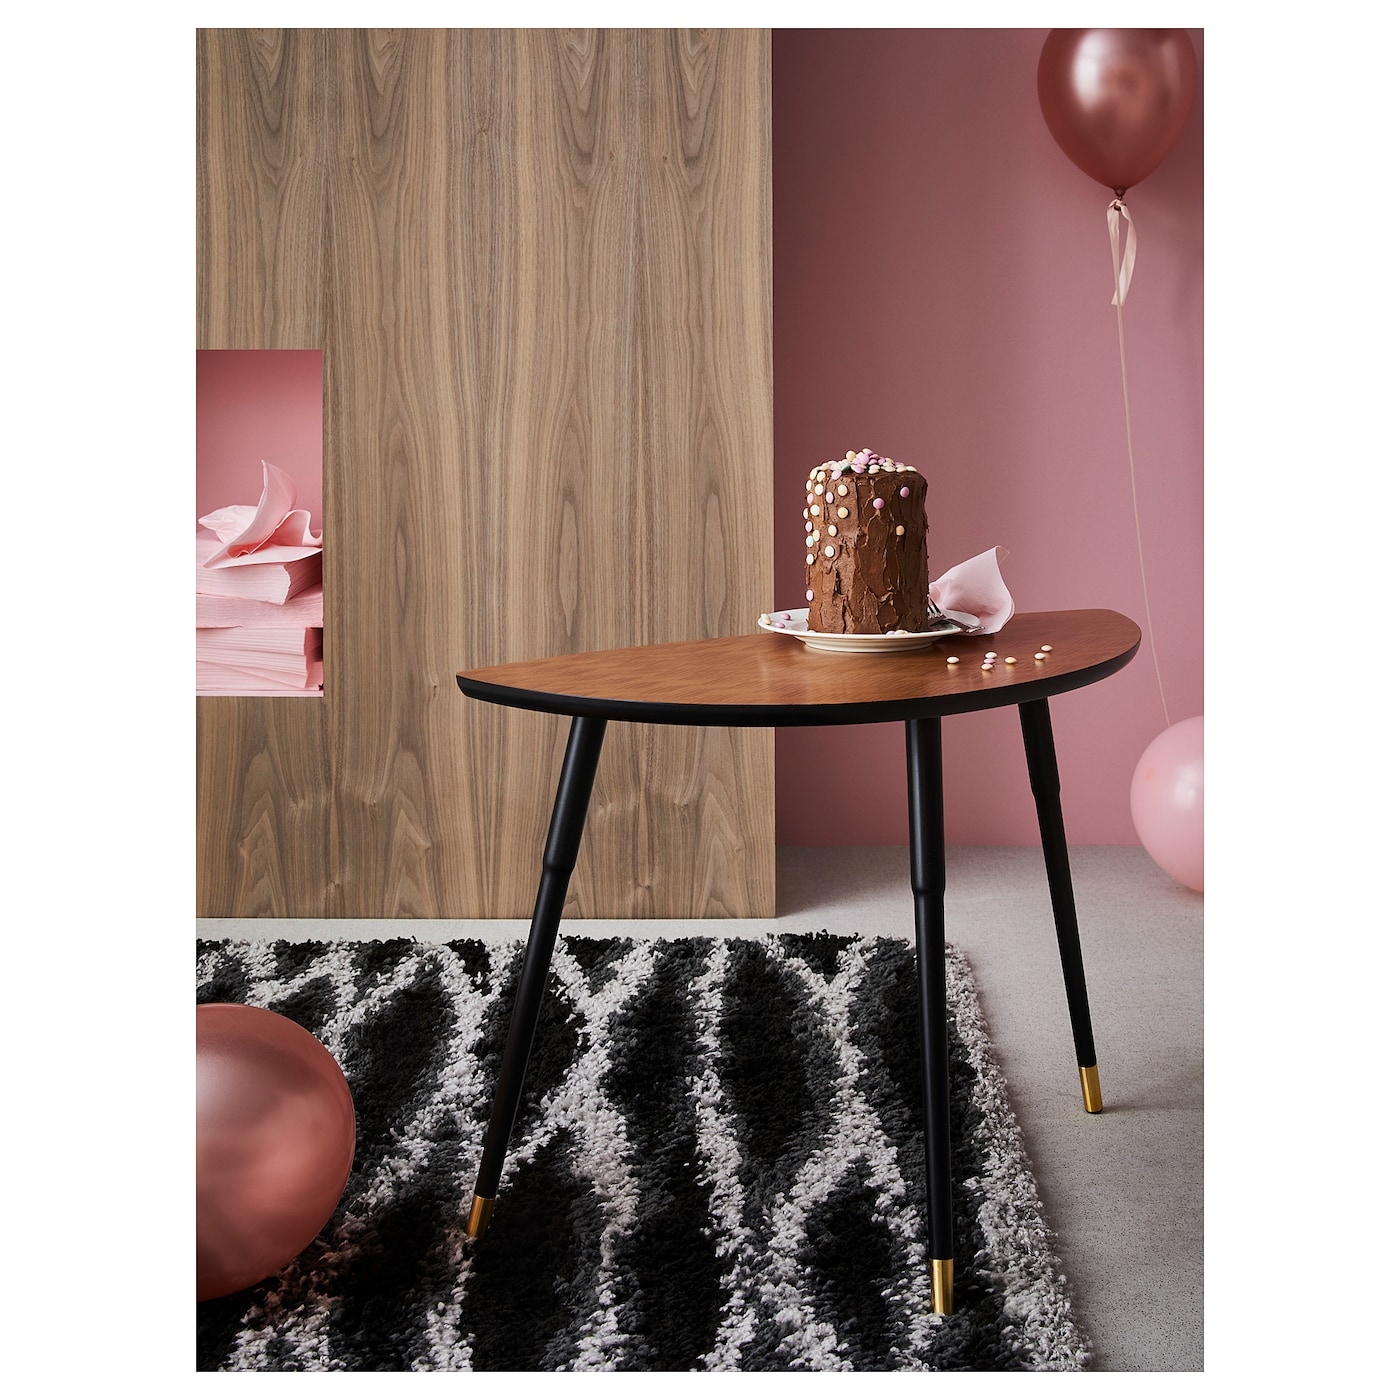 IKEA LÖVBACKEN side table The veneered surface is durable, stain resistant and easy to keep clean.